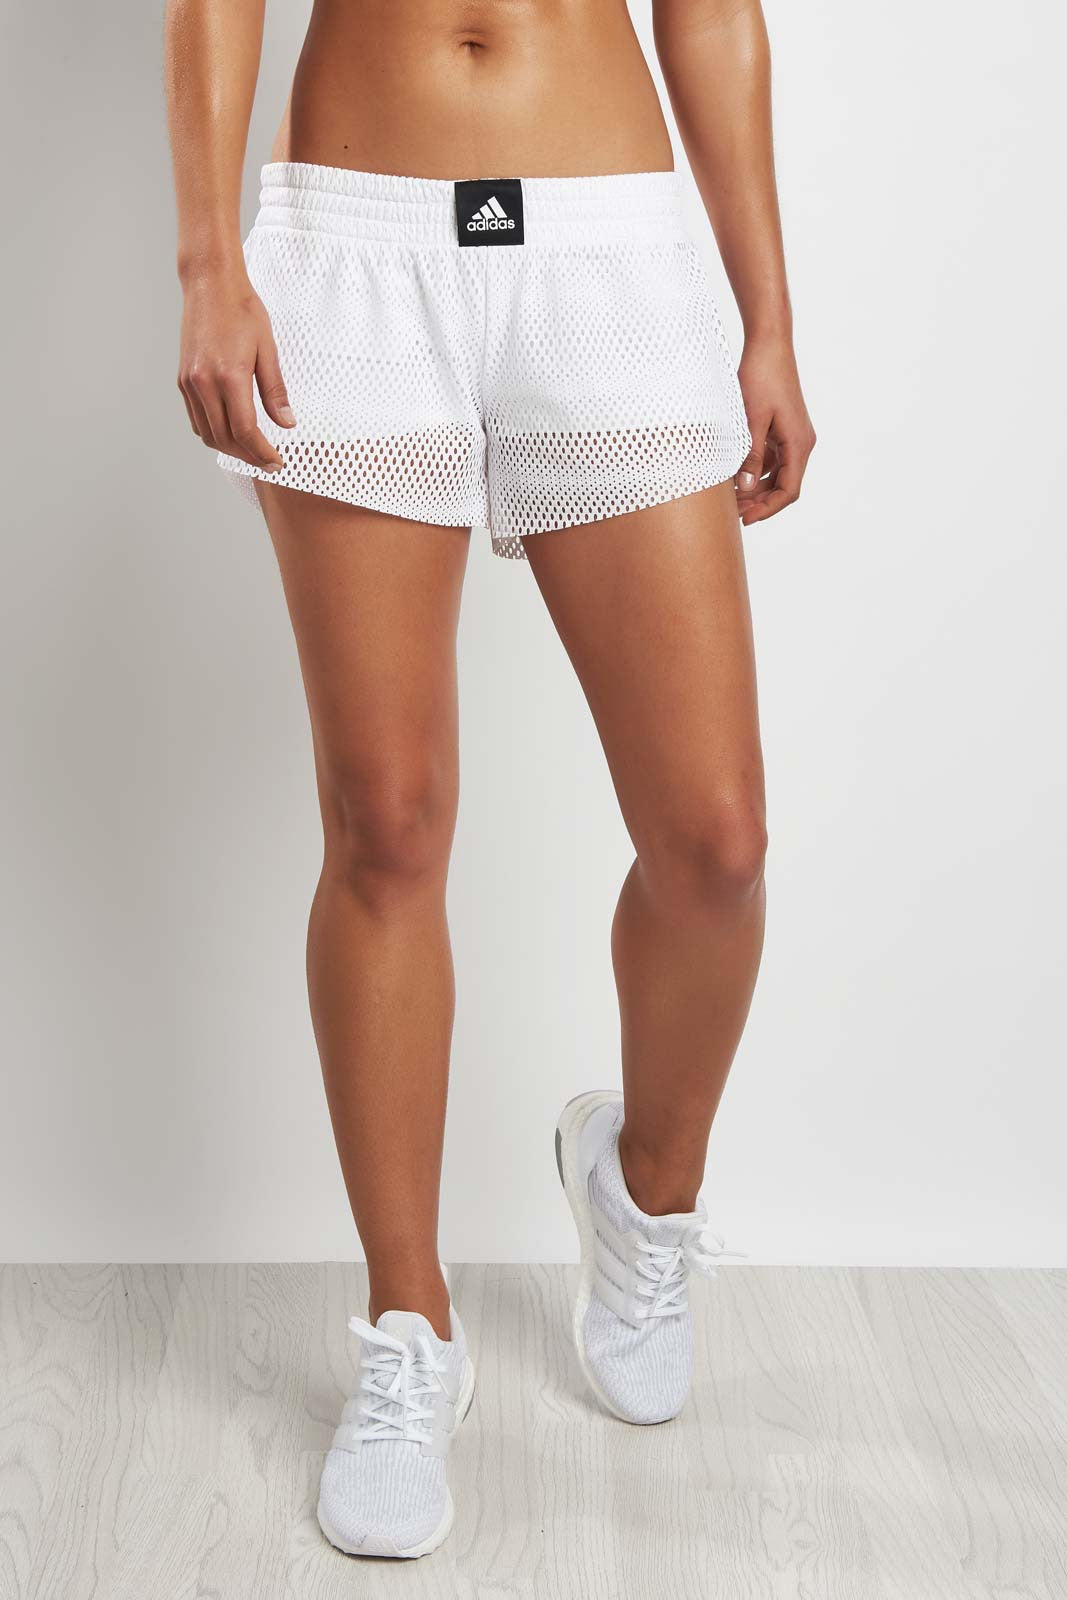 ADIDAS 2 in 1 Mesh Short image 1 - The Sports Edit